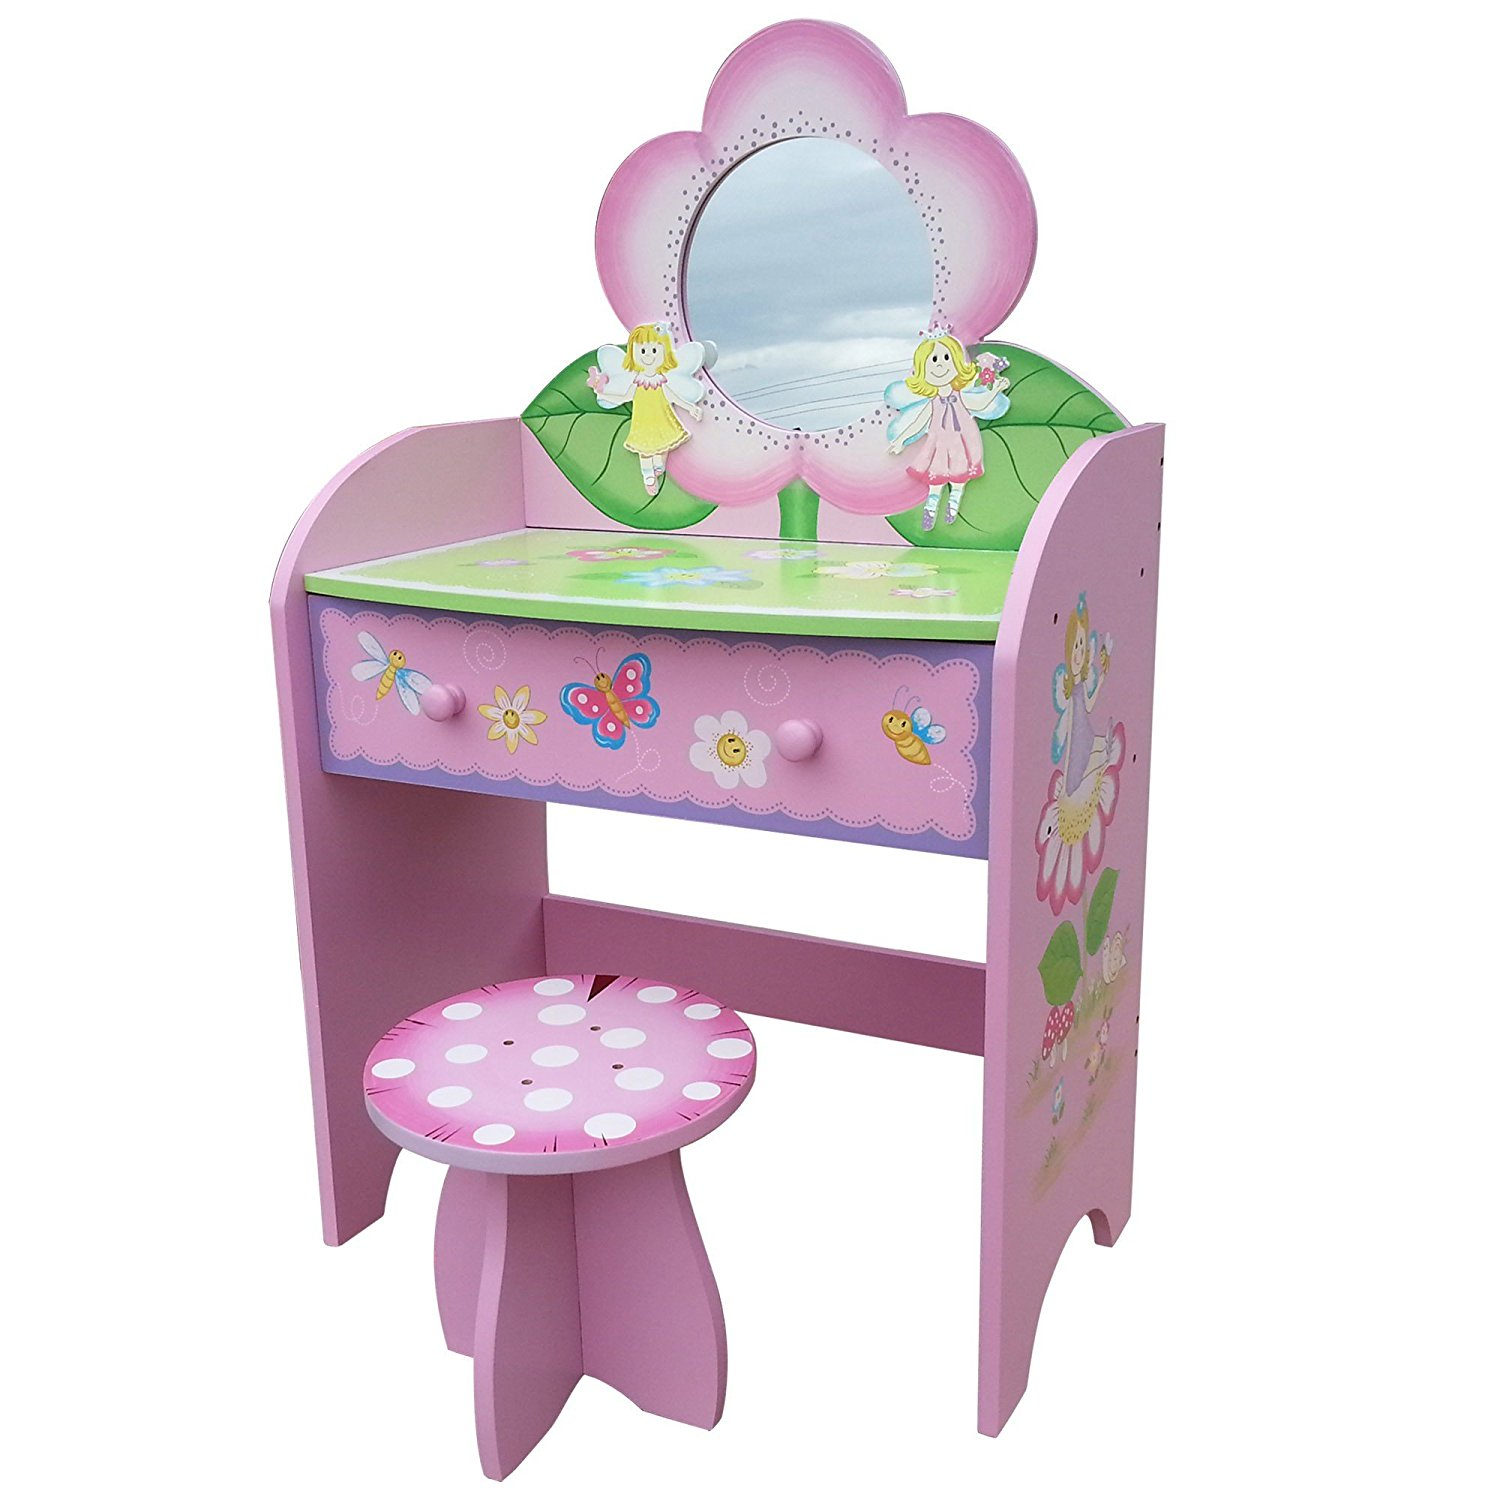 Sentinel Childrens Dressing Table Stool Wooden Vanity Desk Fairy Bedroom Furniture